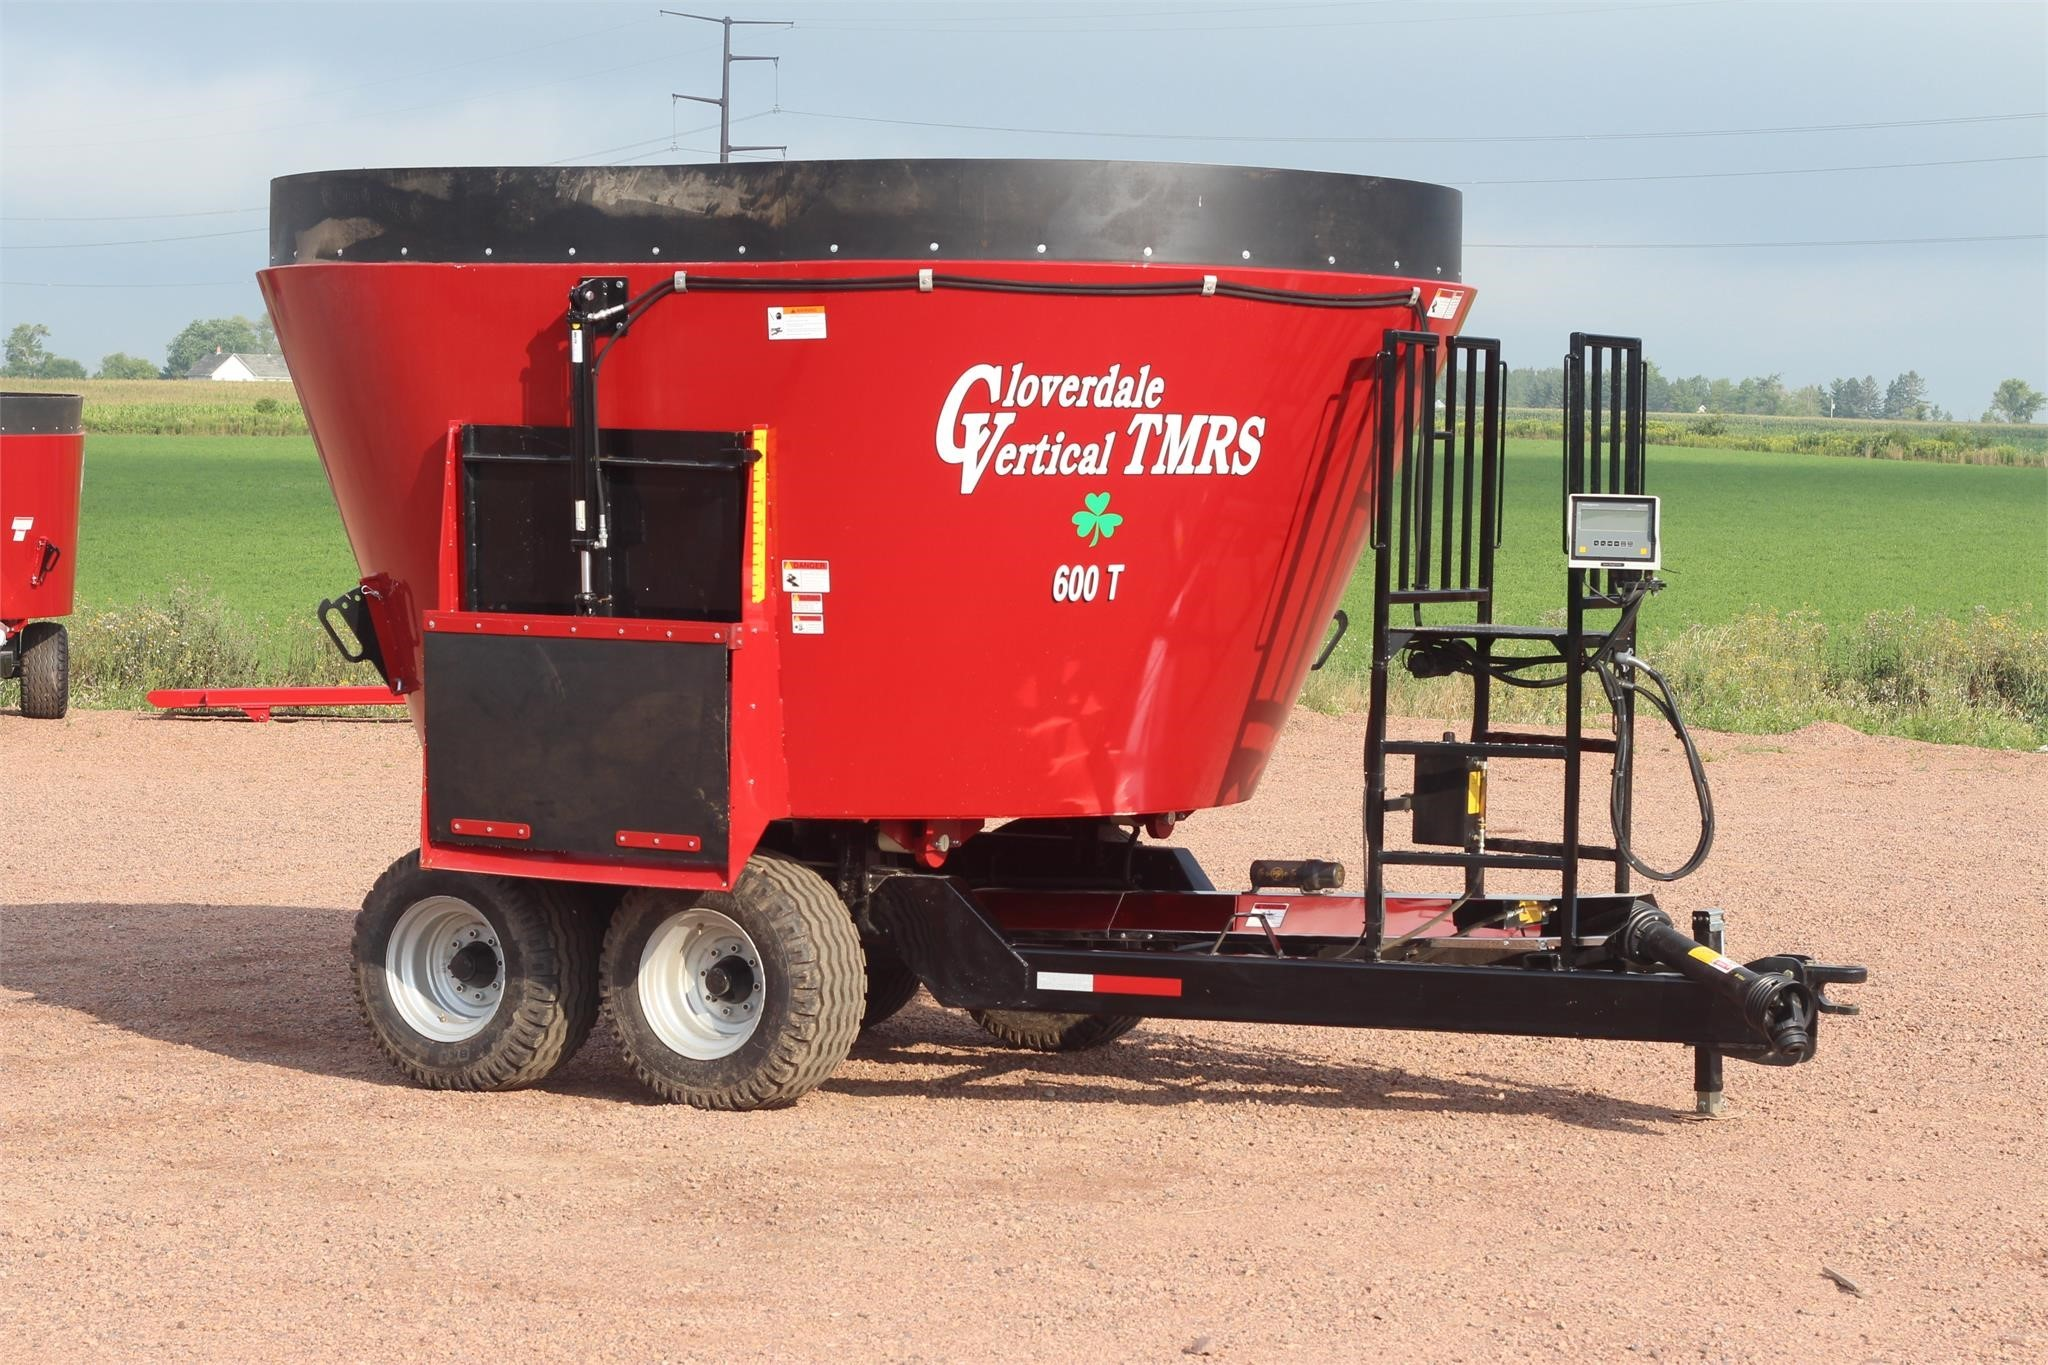 2021 Cloverdale 600T Grinders and Mixer